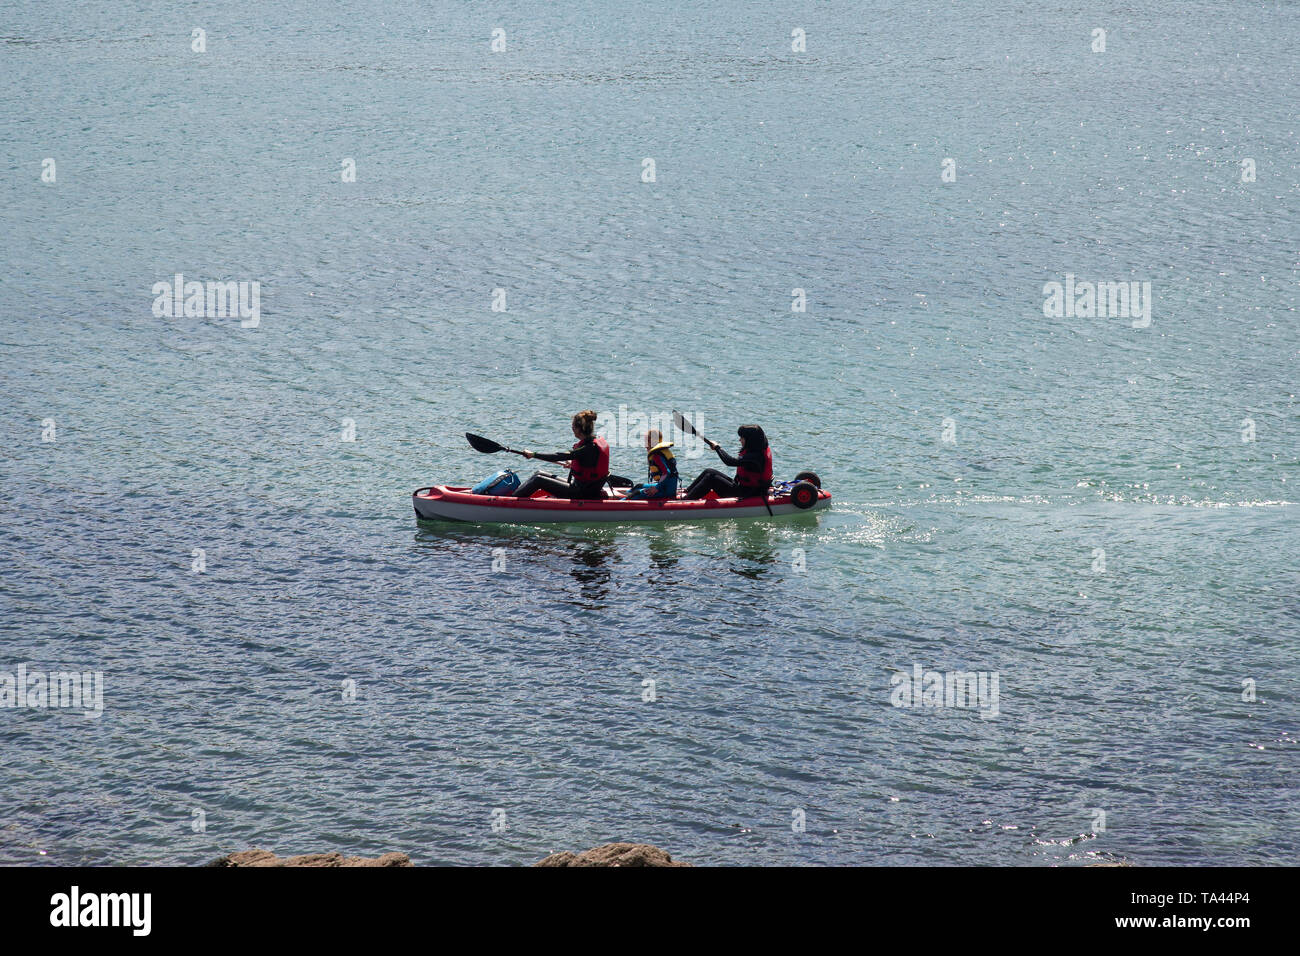 Two adults and a child kyaking in Swanpool cove near Falmouth in Cornwall, U.K. - Stock Image